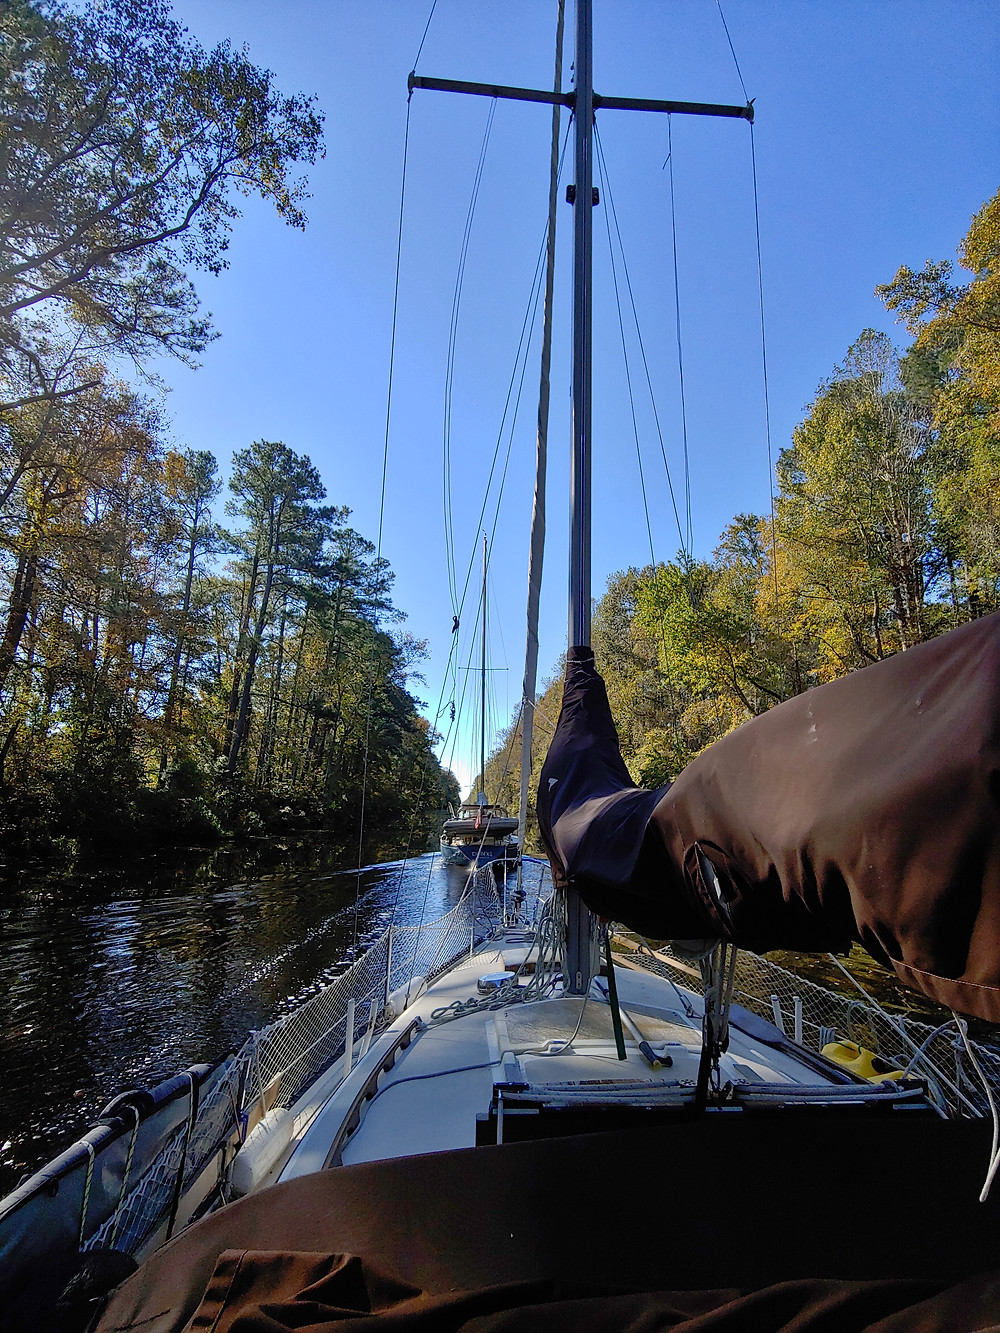 towed, two sailboats, being towed, dismal swamp canal